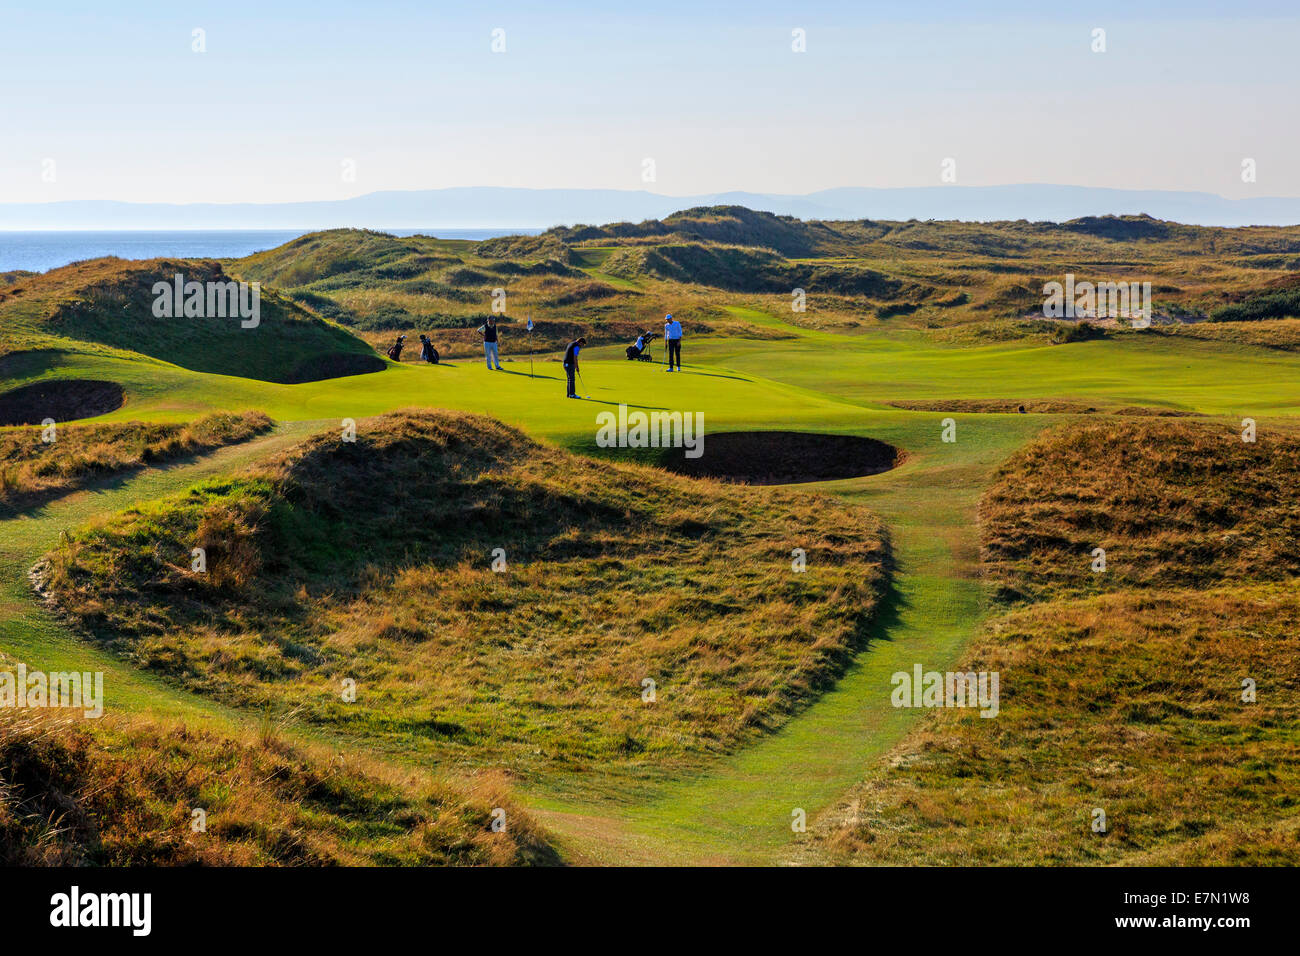 Signature hole, The Postage Stamp, the 8th, at Royal Troon Golf Club, Troon, Ayrshire, Scotland, UK - Stock Image